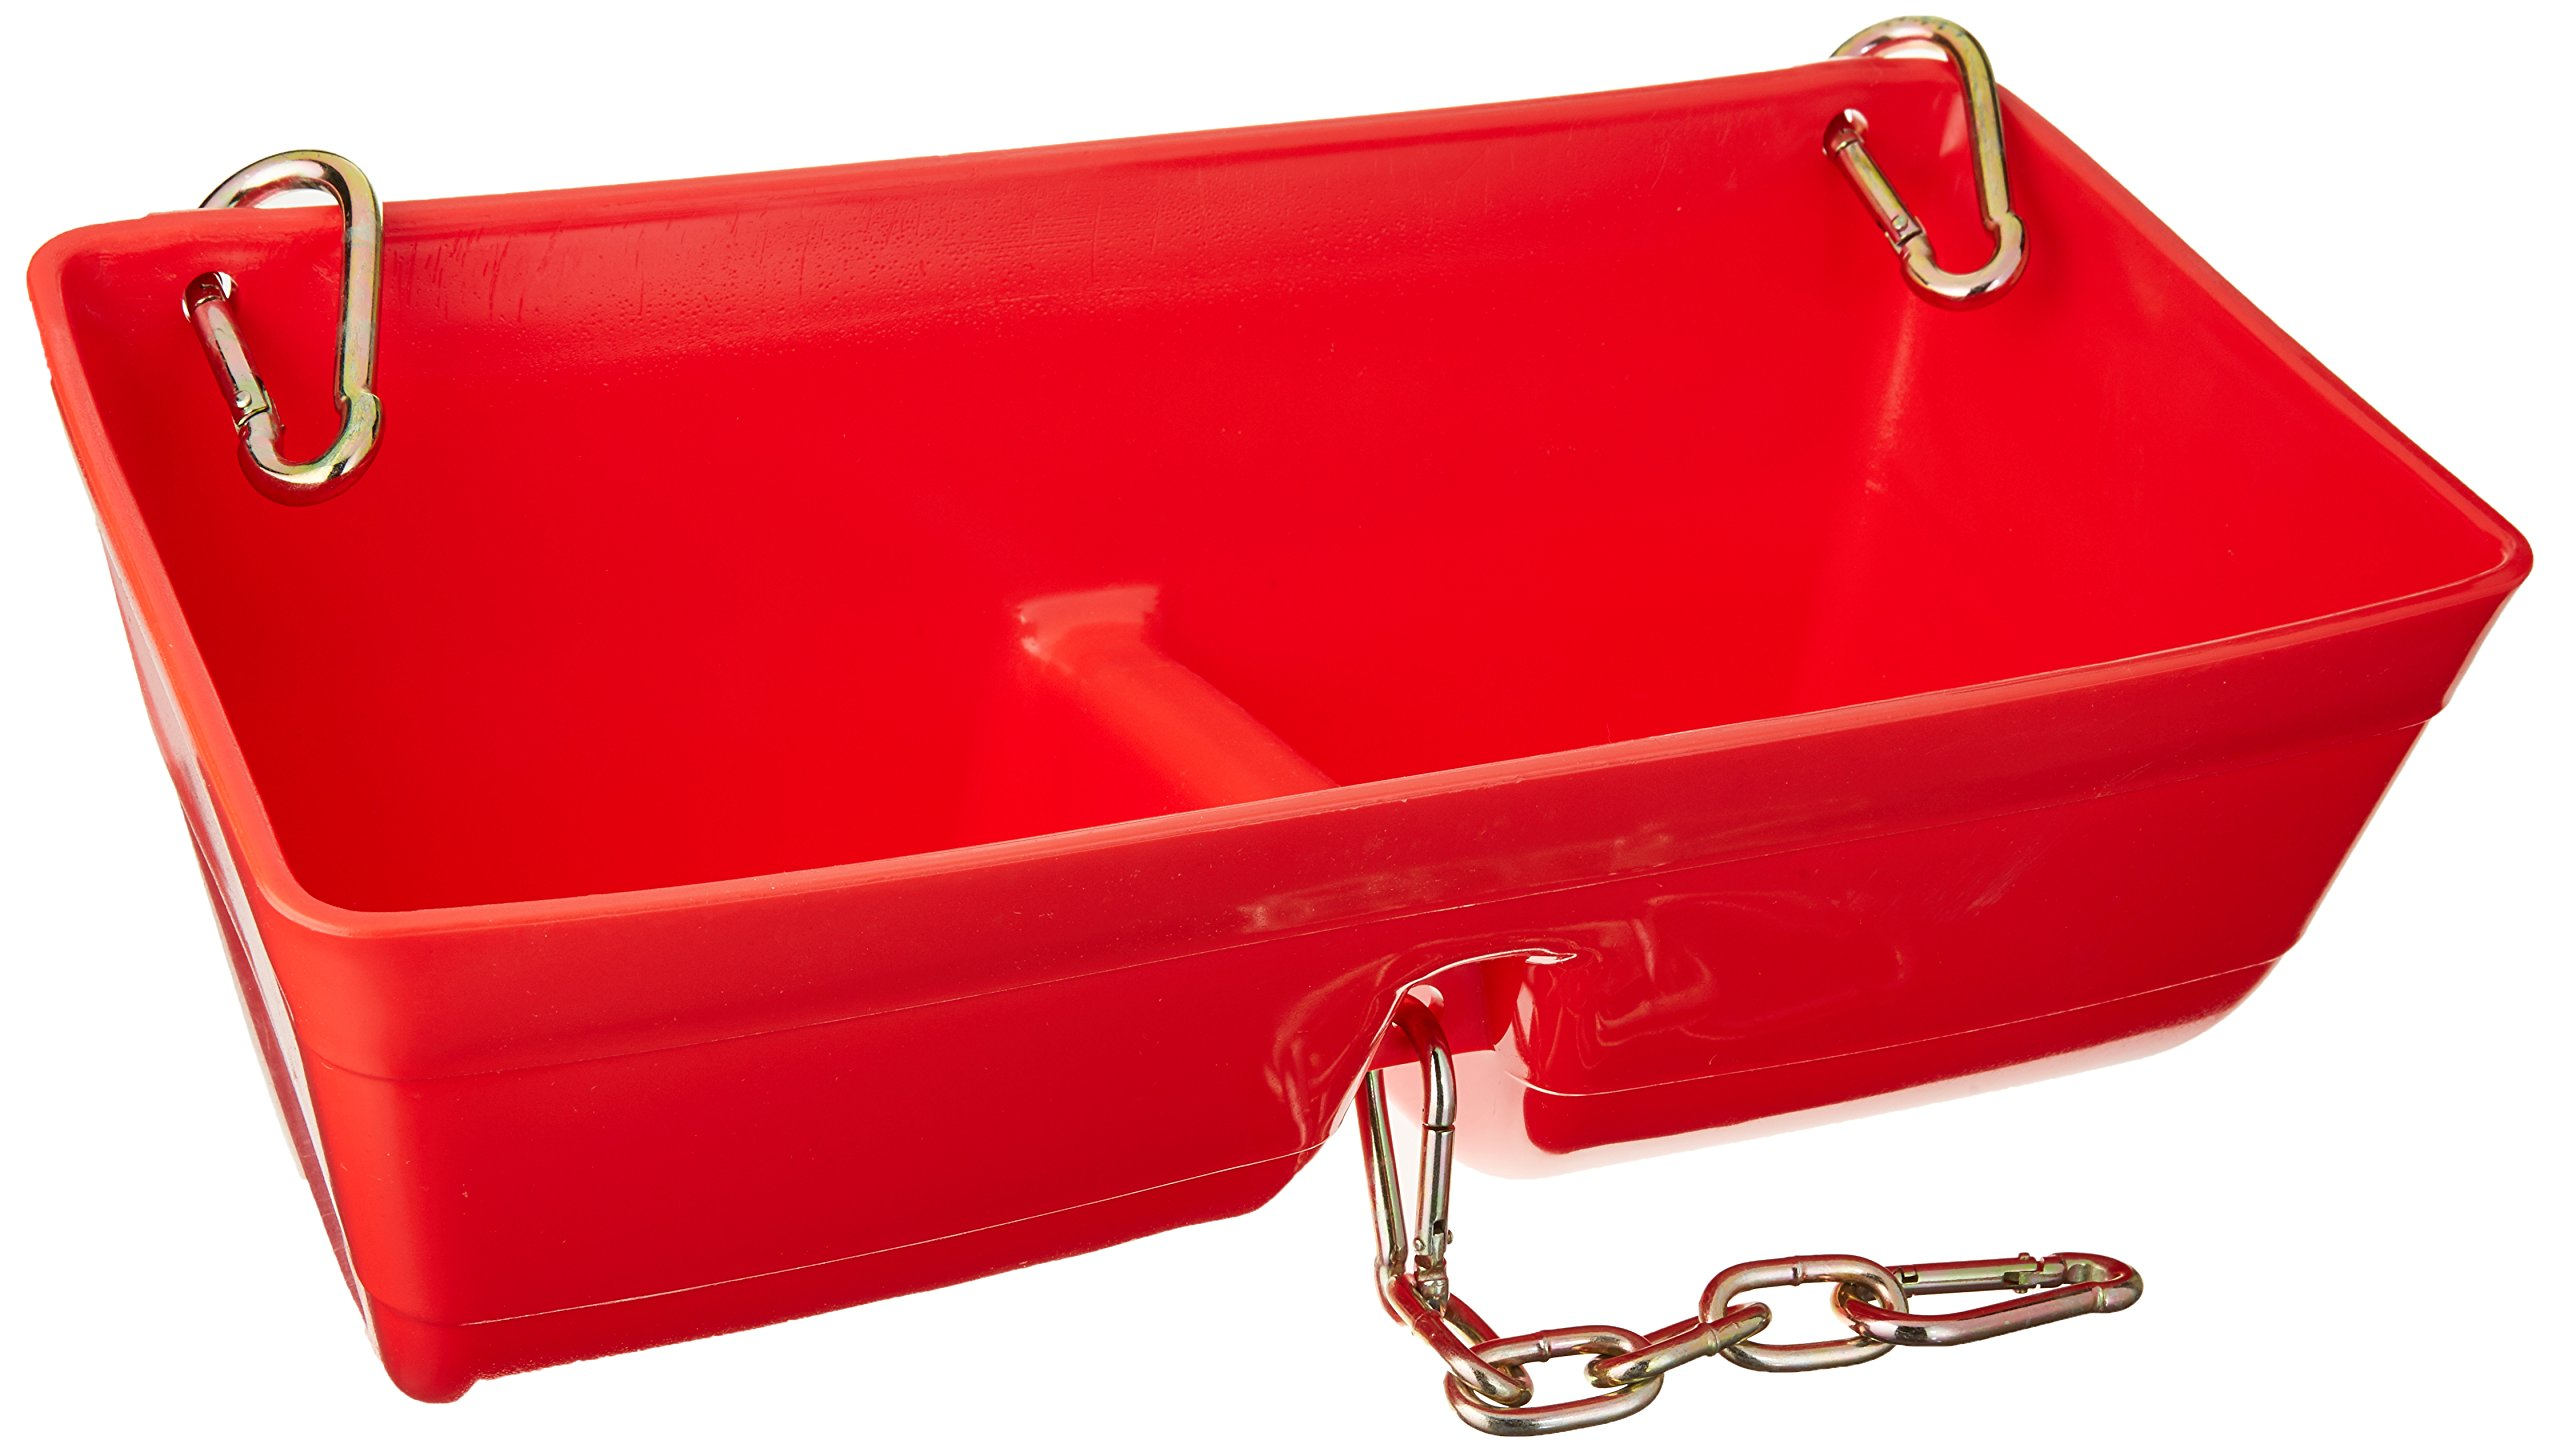 Little Giant Fence Feeder with Clips and Chain, 16-Inch, Red (FF16RED)